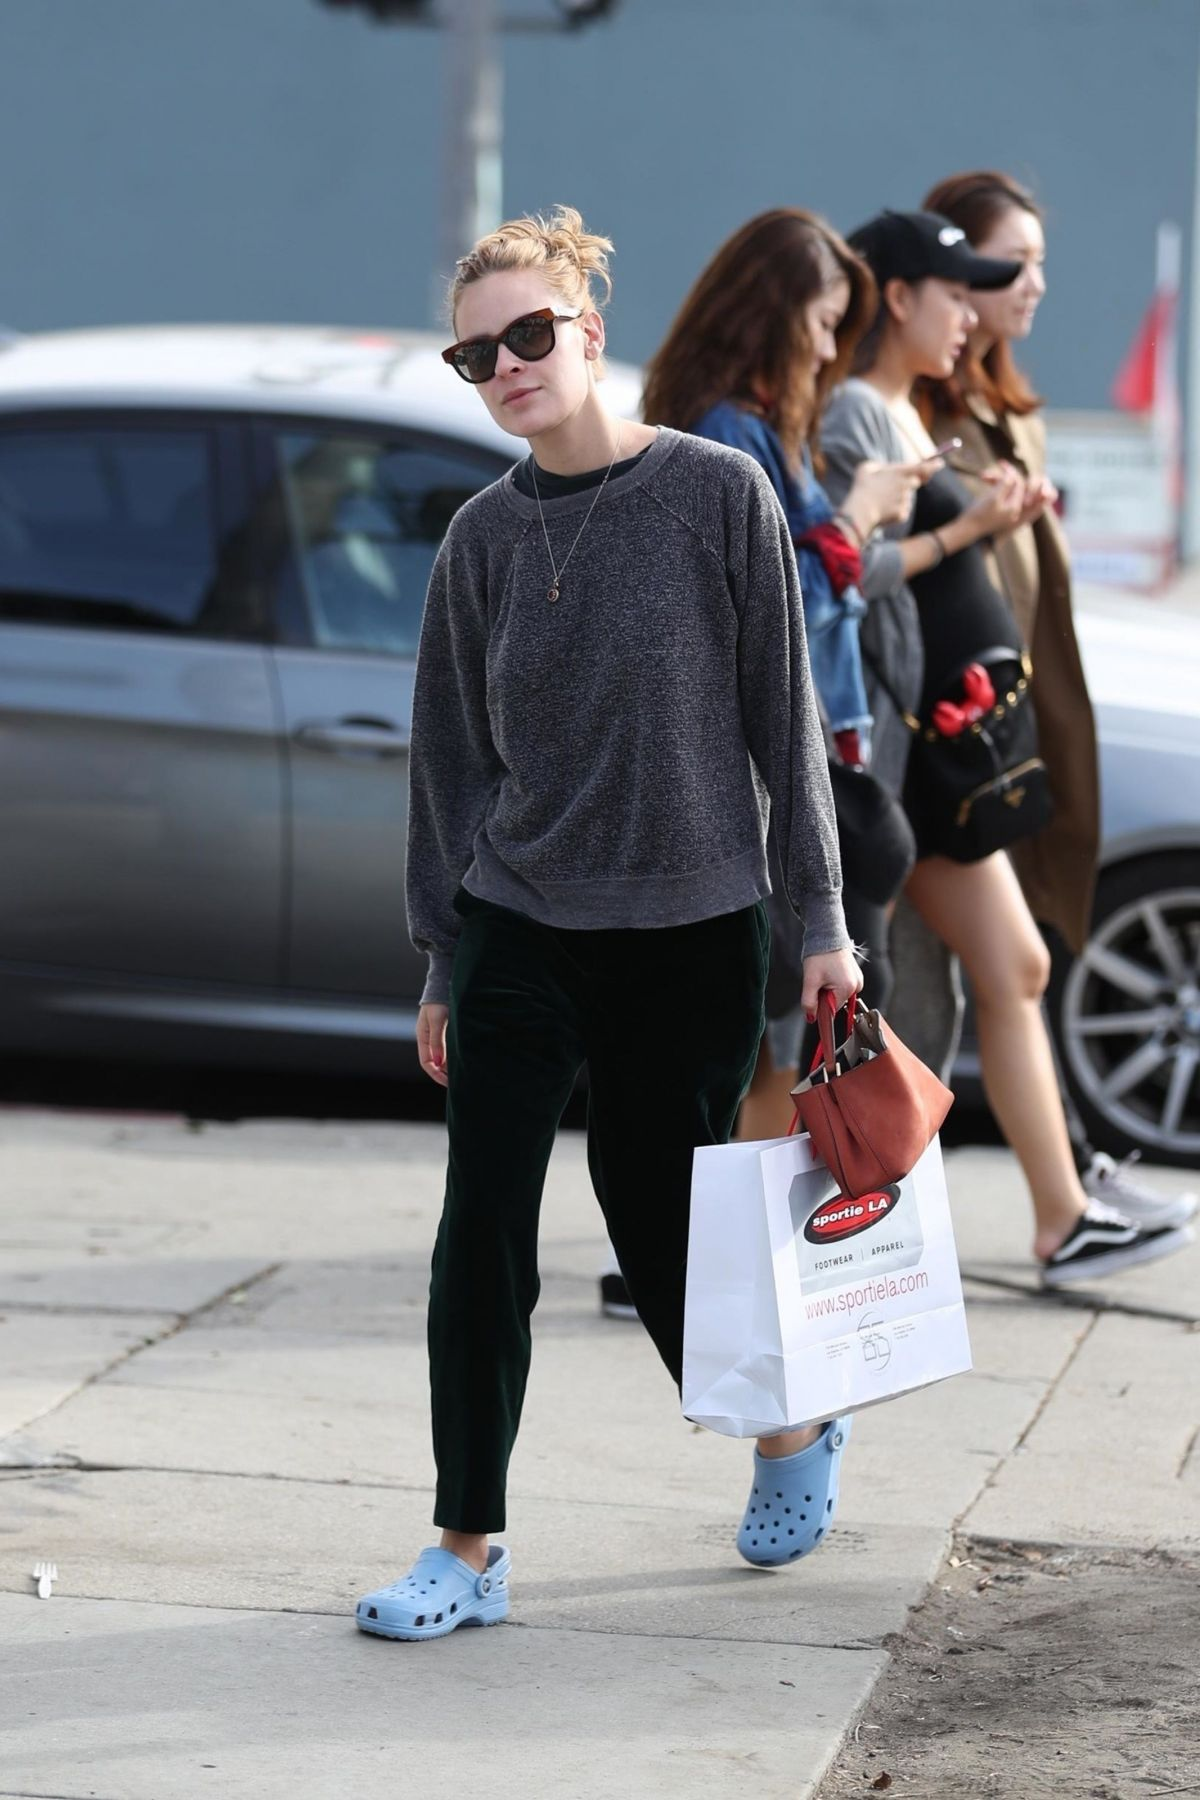 Tallulah Willis Shopping at Sportie LA on Melrose Avenue in